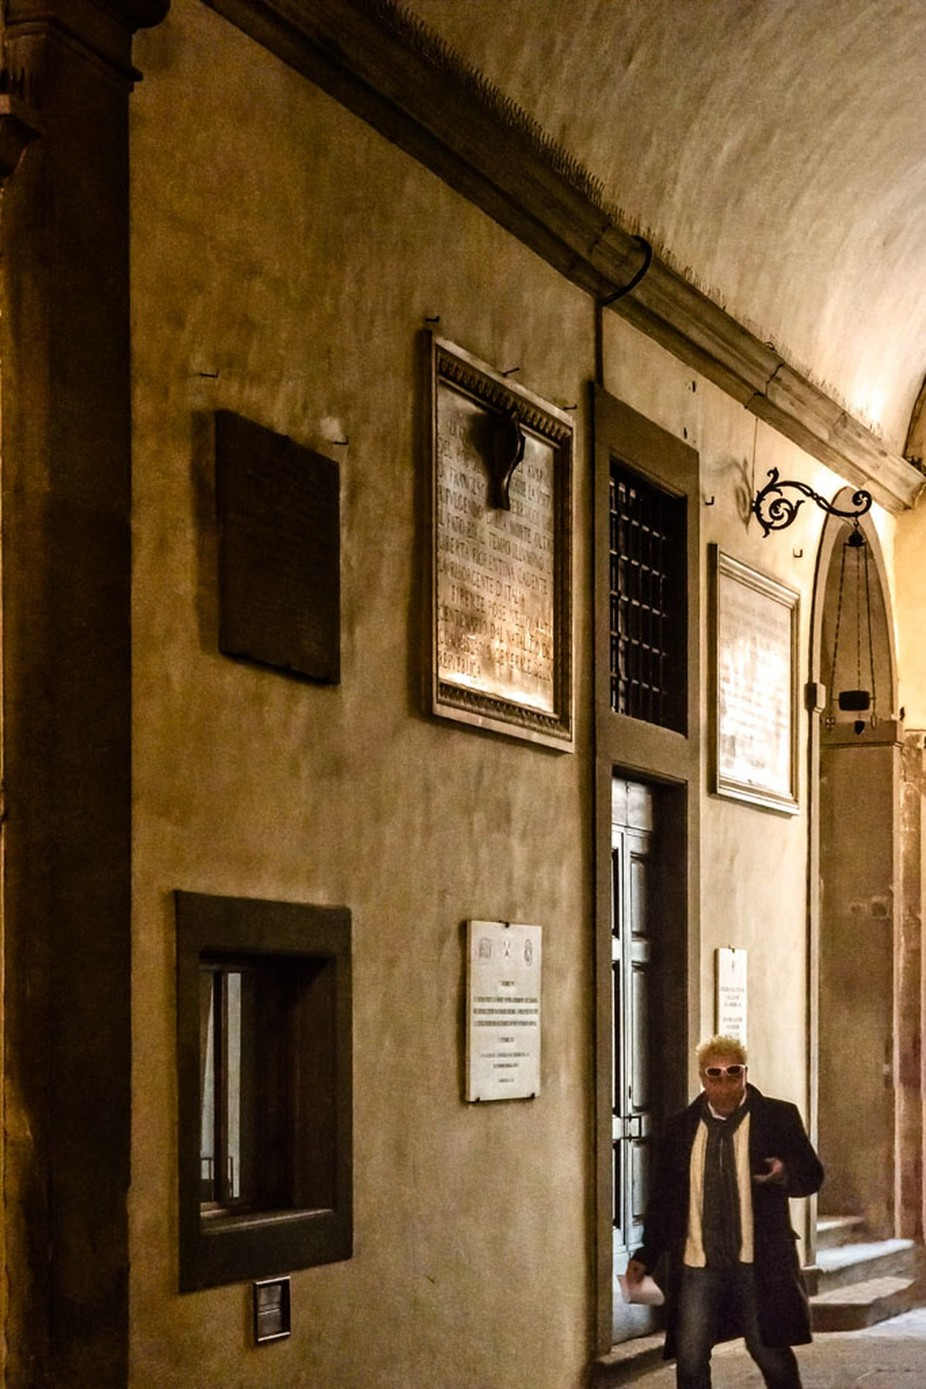 In the Palazzo Vecchio, even in this environment and in this light only looking at the screen of his smartphone, in Florence, Italy